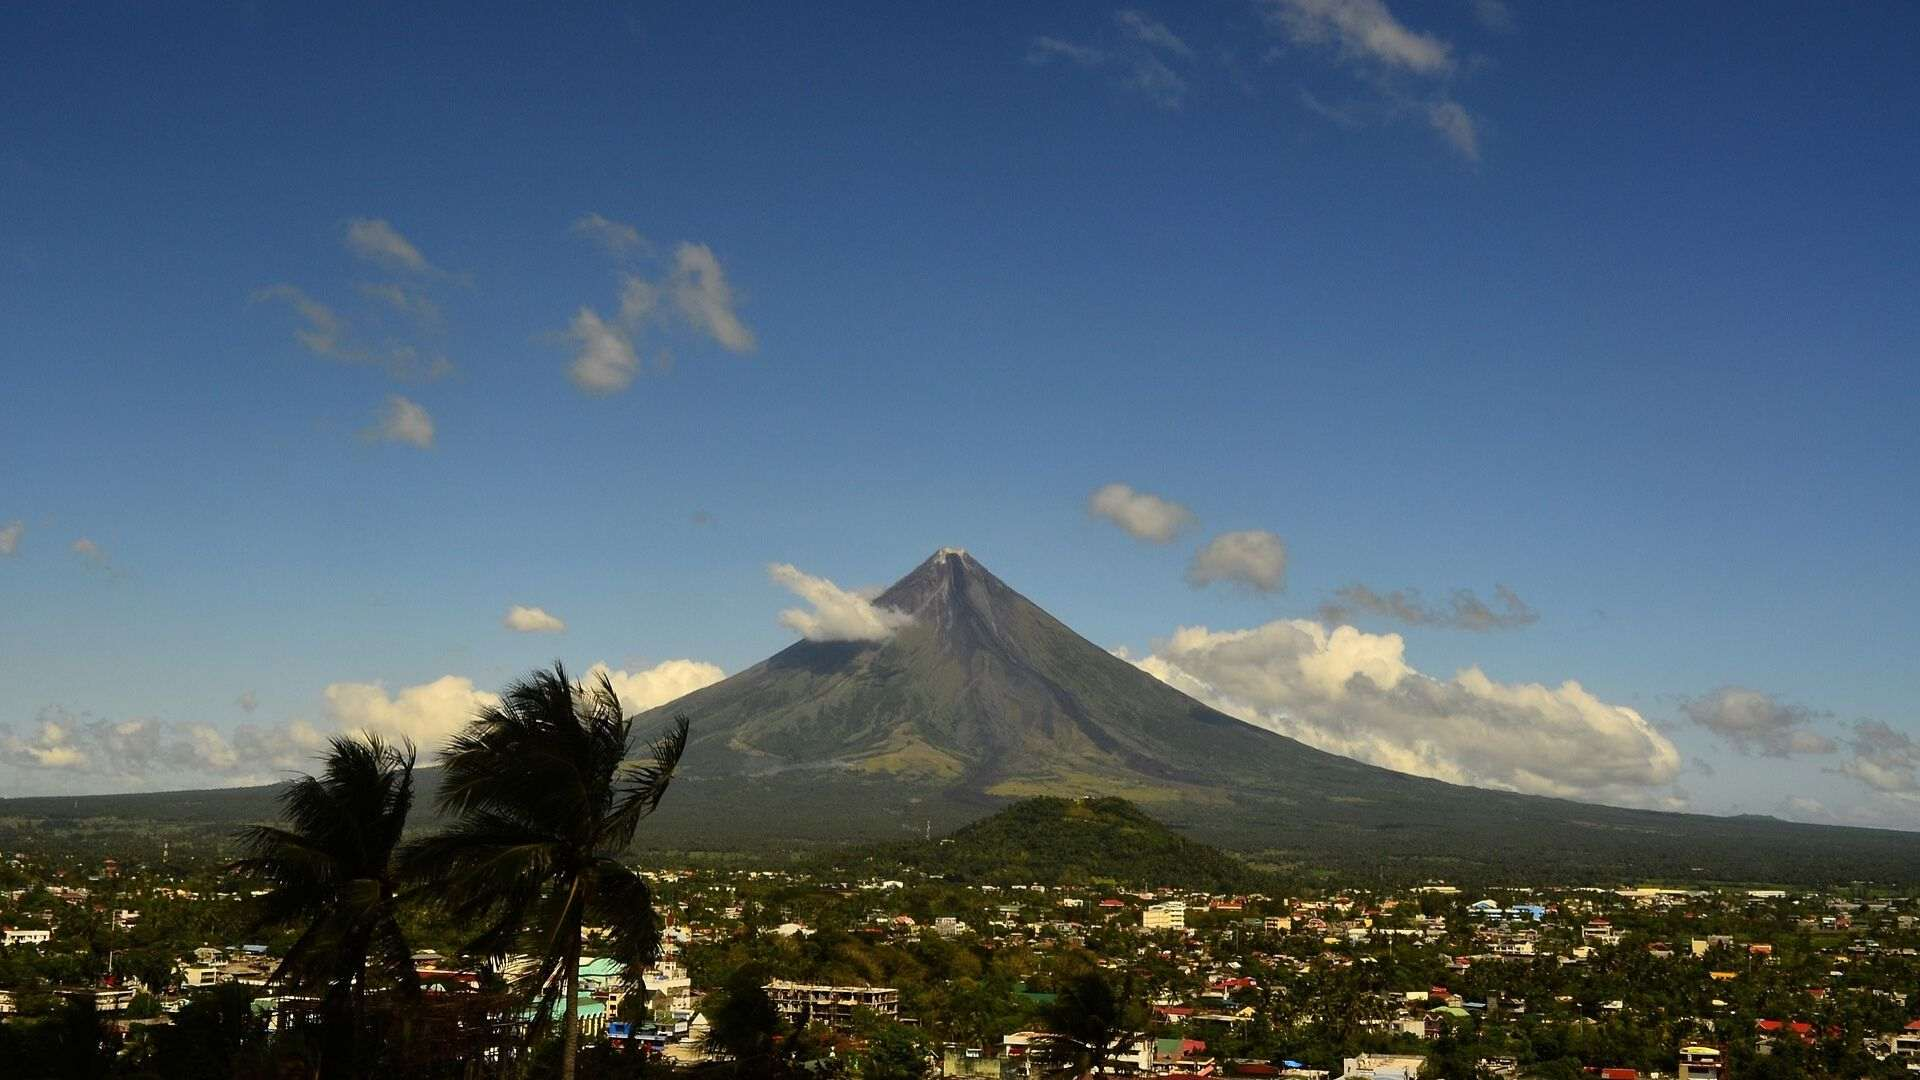 Beautiful Mayon